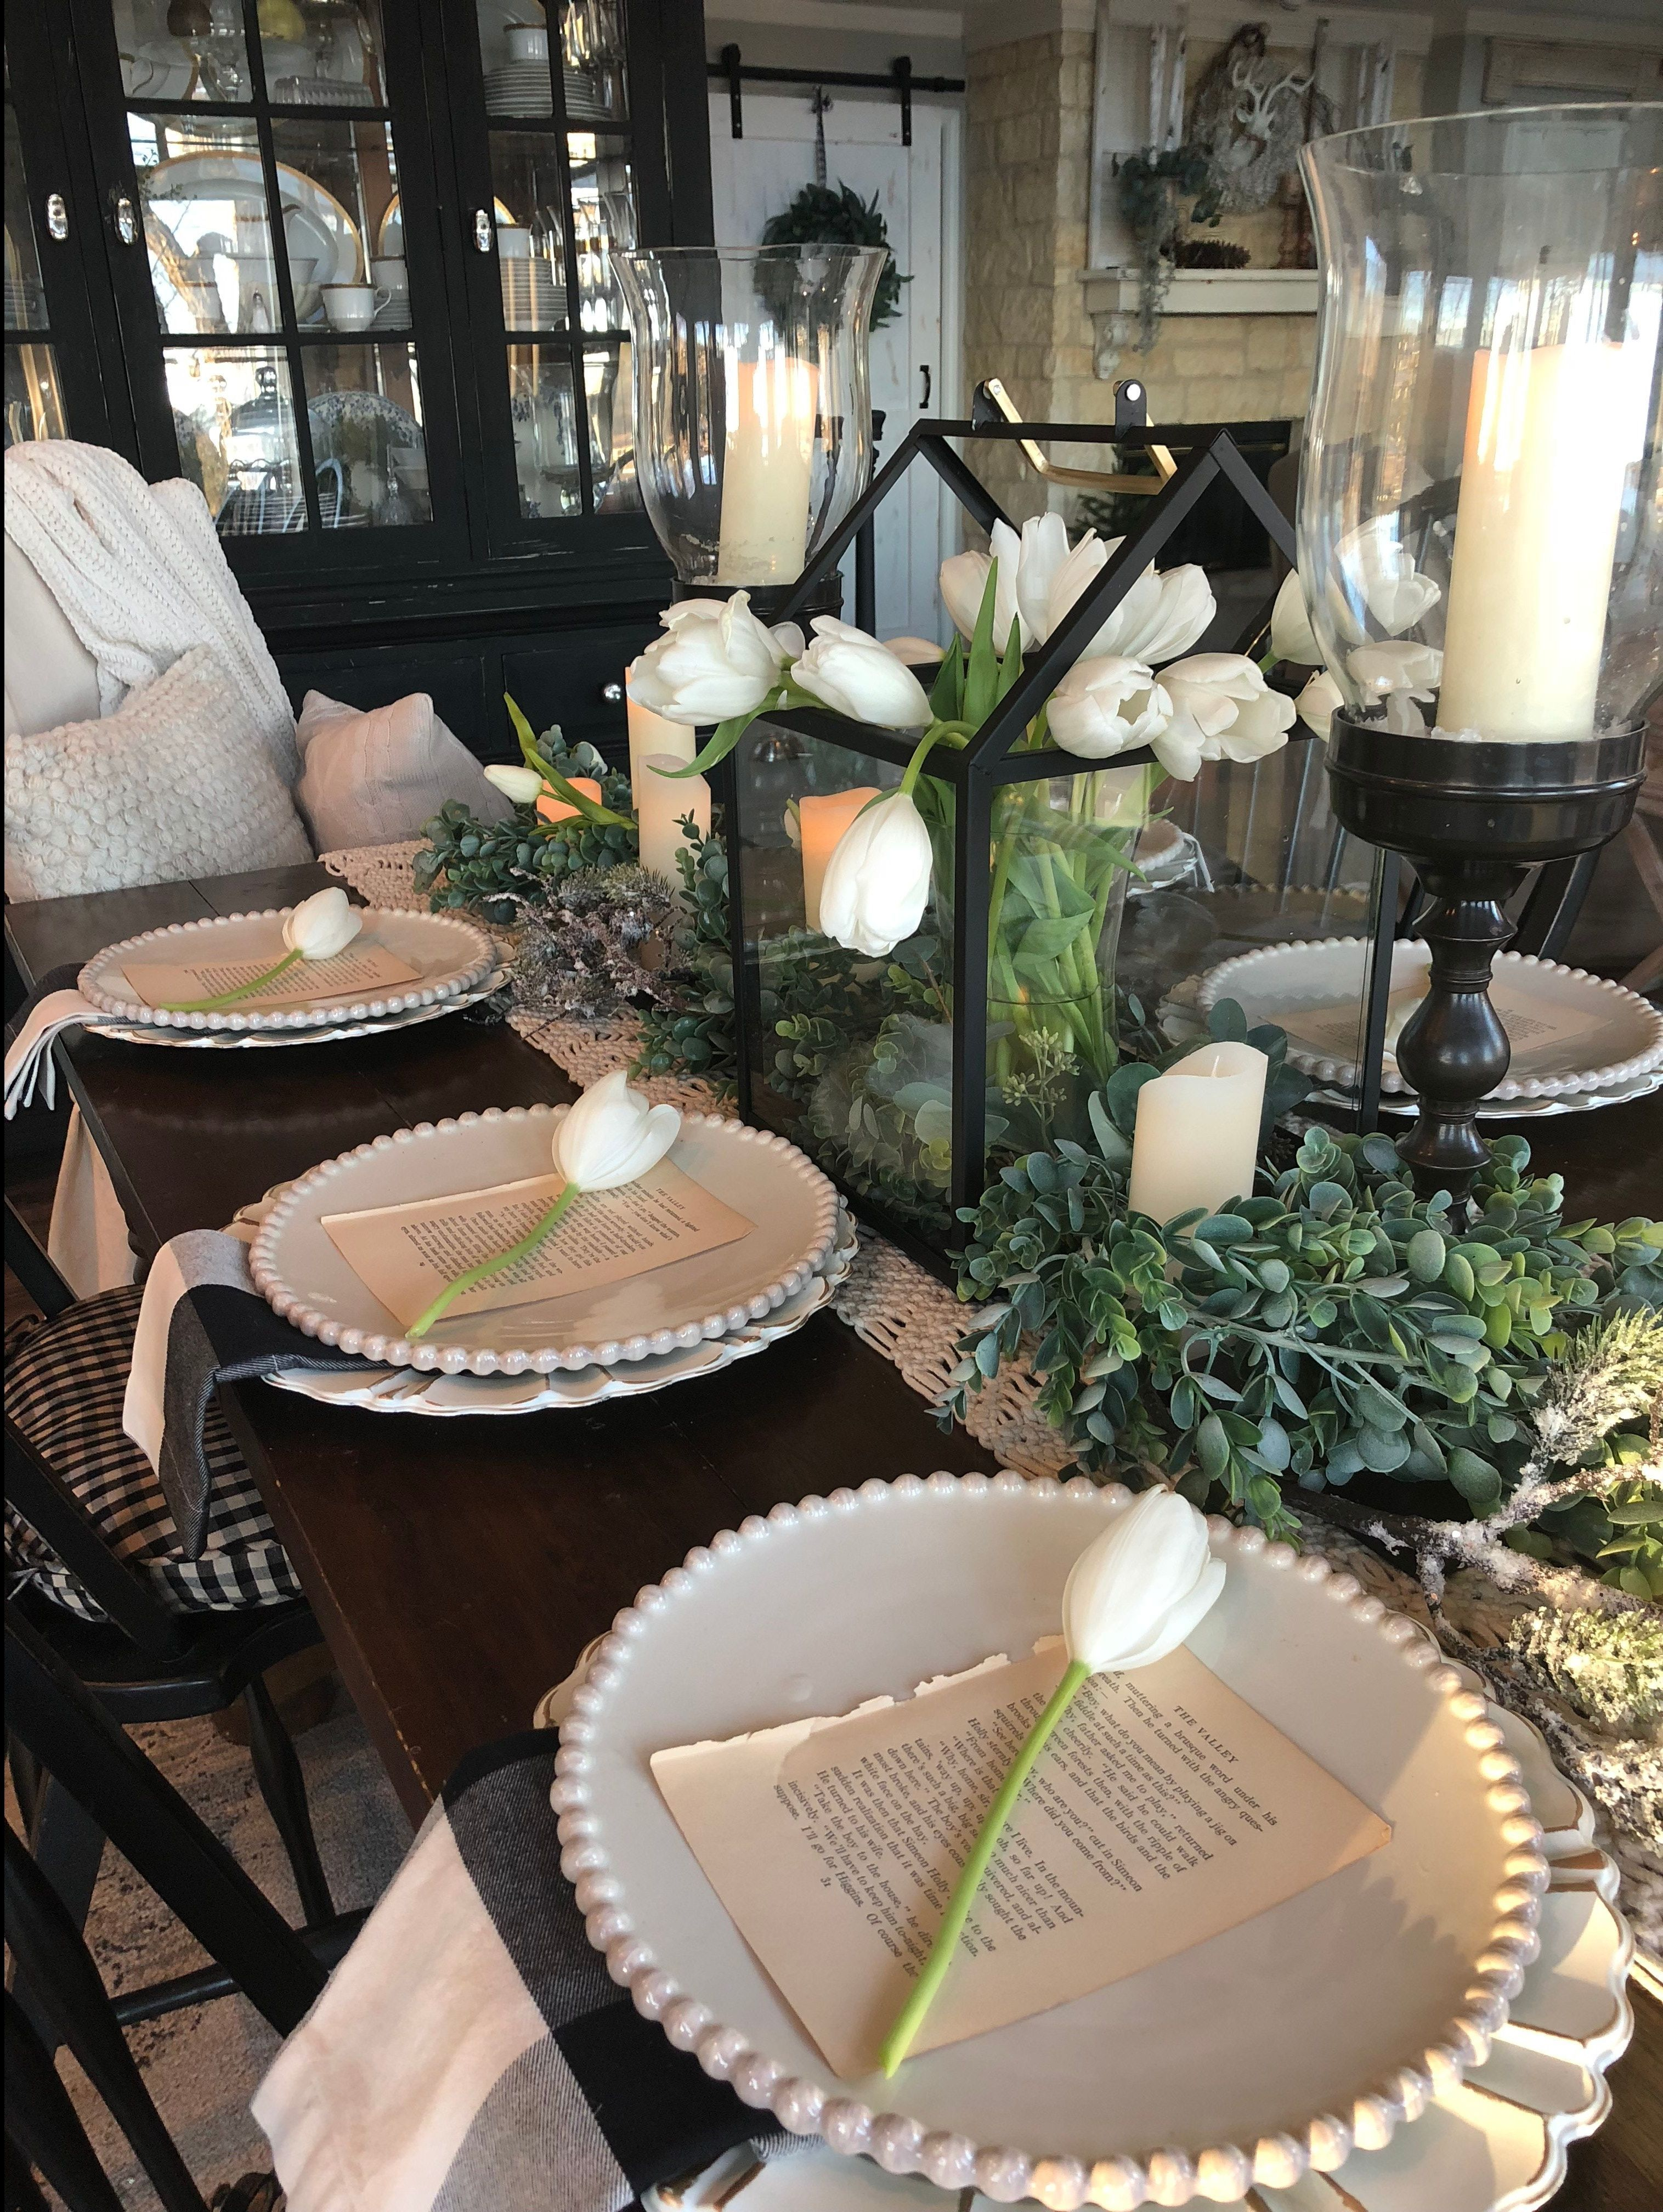 2 Colours For A Luxury Dining Room Insplosion Blog Dining Room Table Centerpieces Dining Room Table Decor Dining Room Cozy